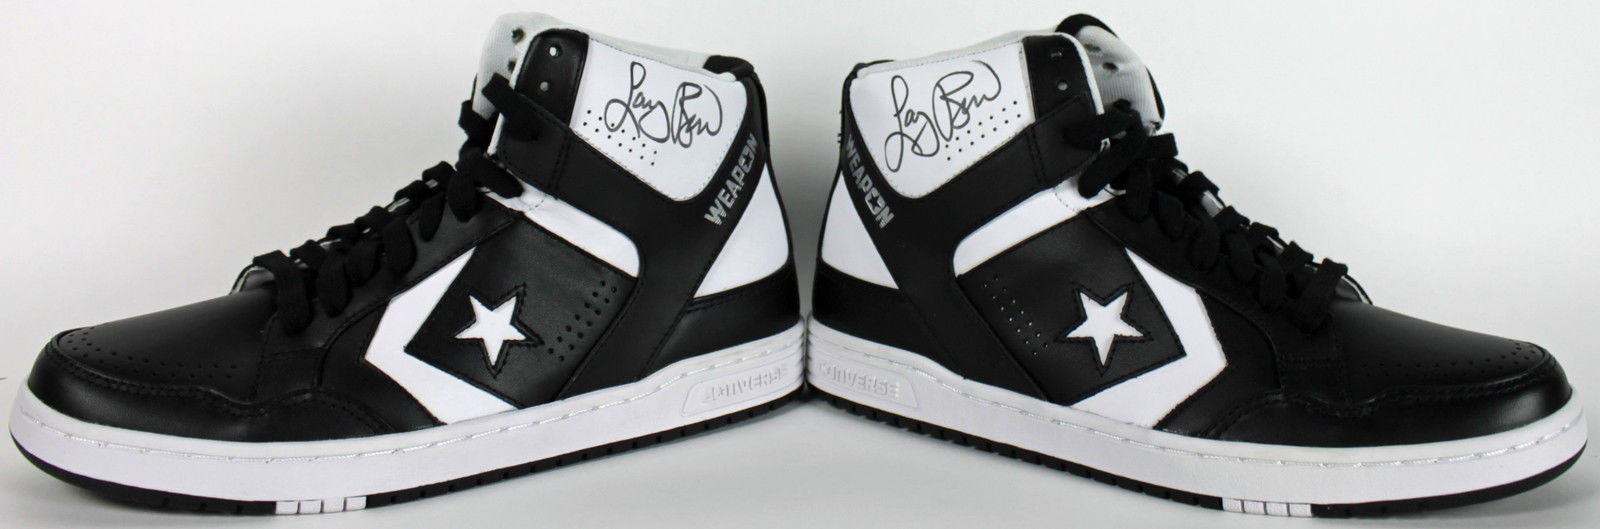 5d274e8c9a75 Larry Bird Rare Signed Converse Weapon Game Model Basketball Shoes (PSA DNA    Player ...